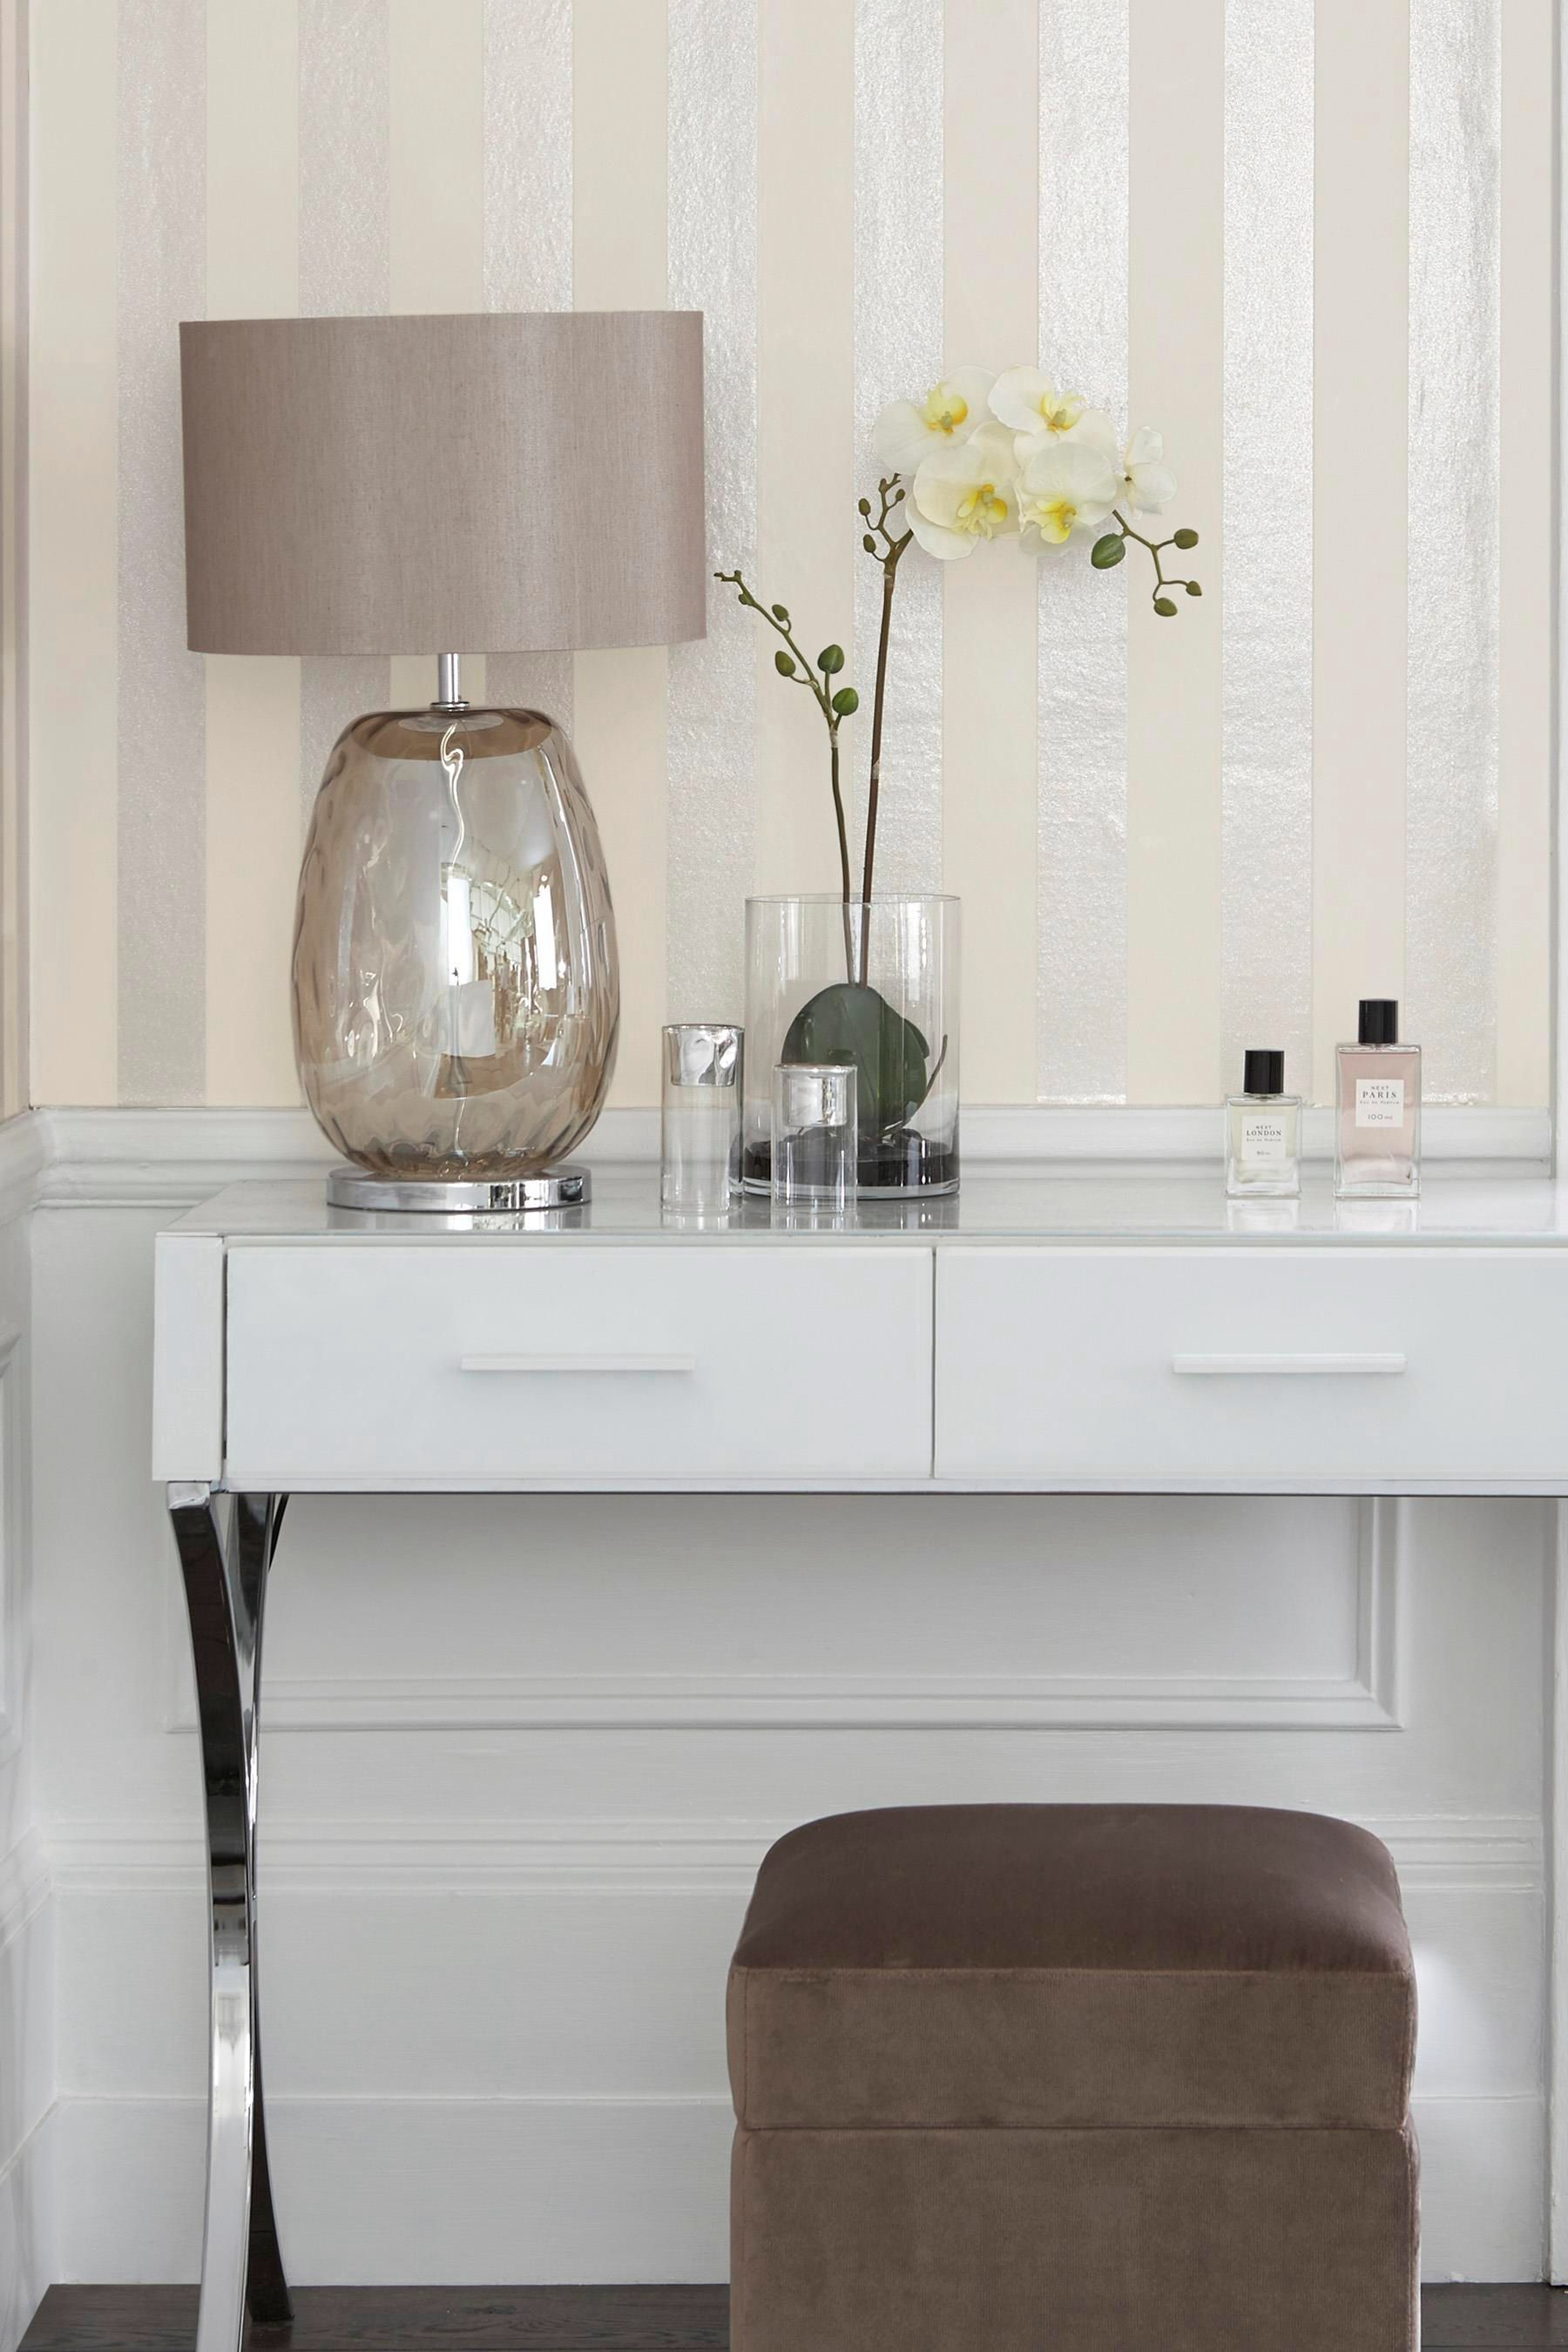 Hallway wallpaper or paint  Stripes of gloss and matte paint in light neutrals can create a very